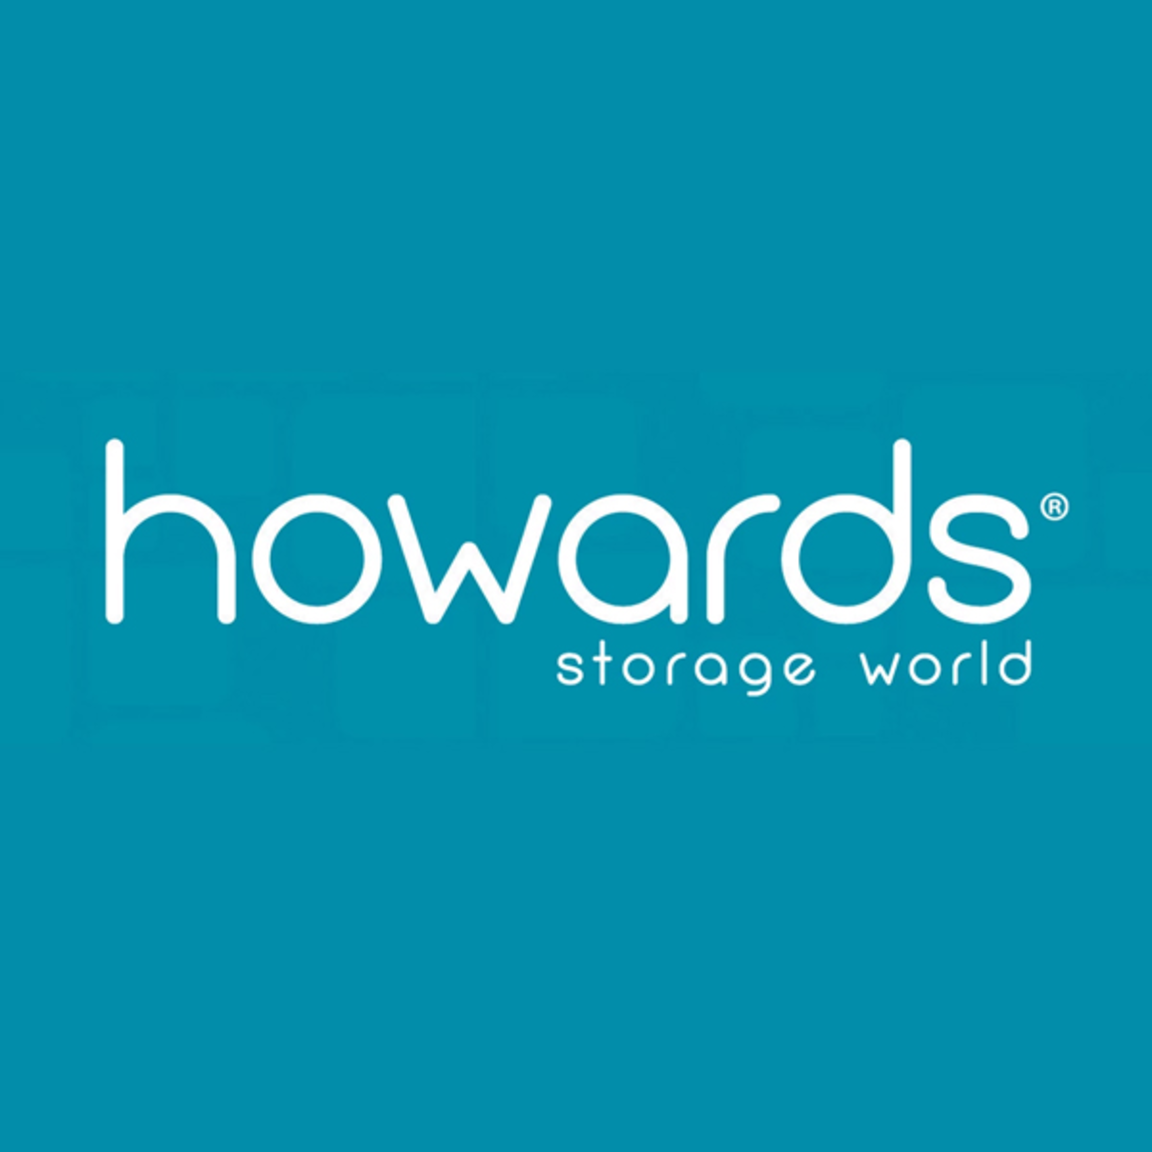 Howards Storage World at Westfield Doncaster 3adcb259b0c6e